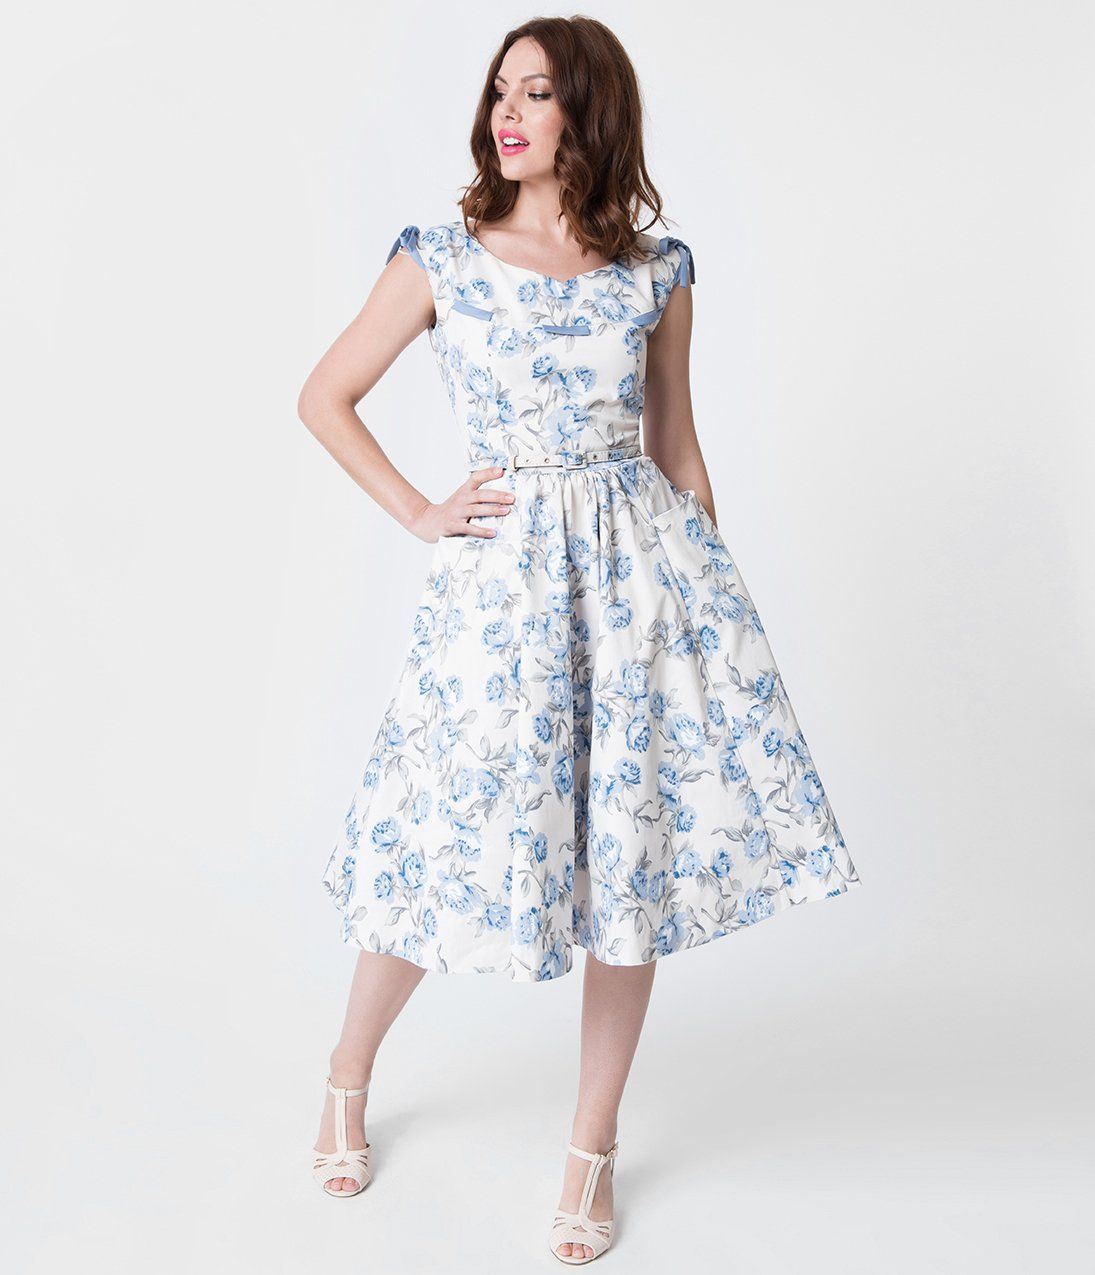 Unique Vintage 1950s Style Ivory Light Blue Floral Marlo Swing Dress Vintage Inspired Fashion 1950s Fashion Flapper Style Dresses [ 1275 x 1095 Pixel ]